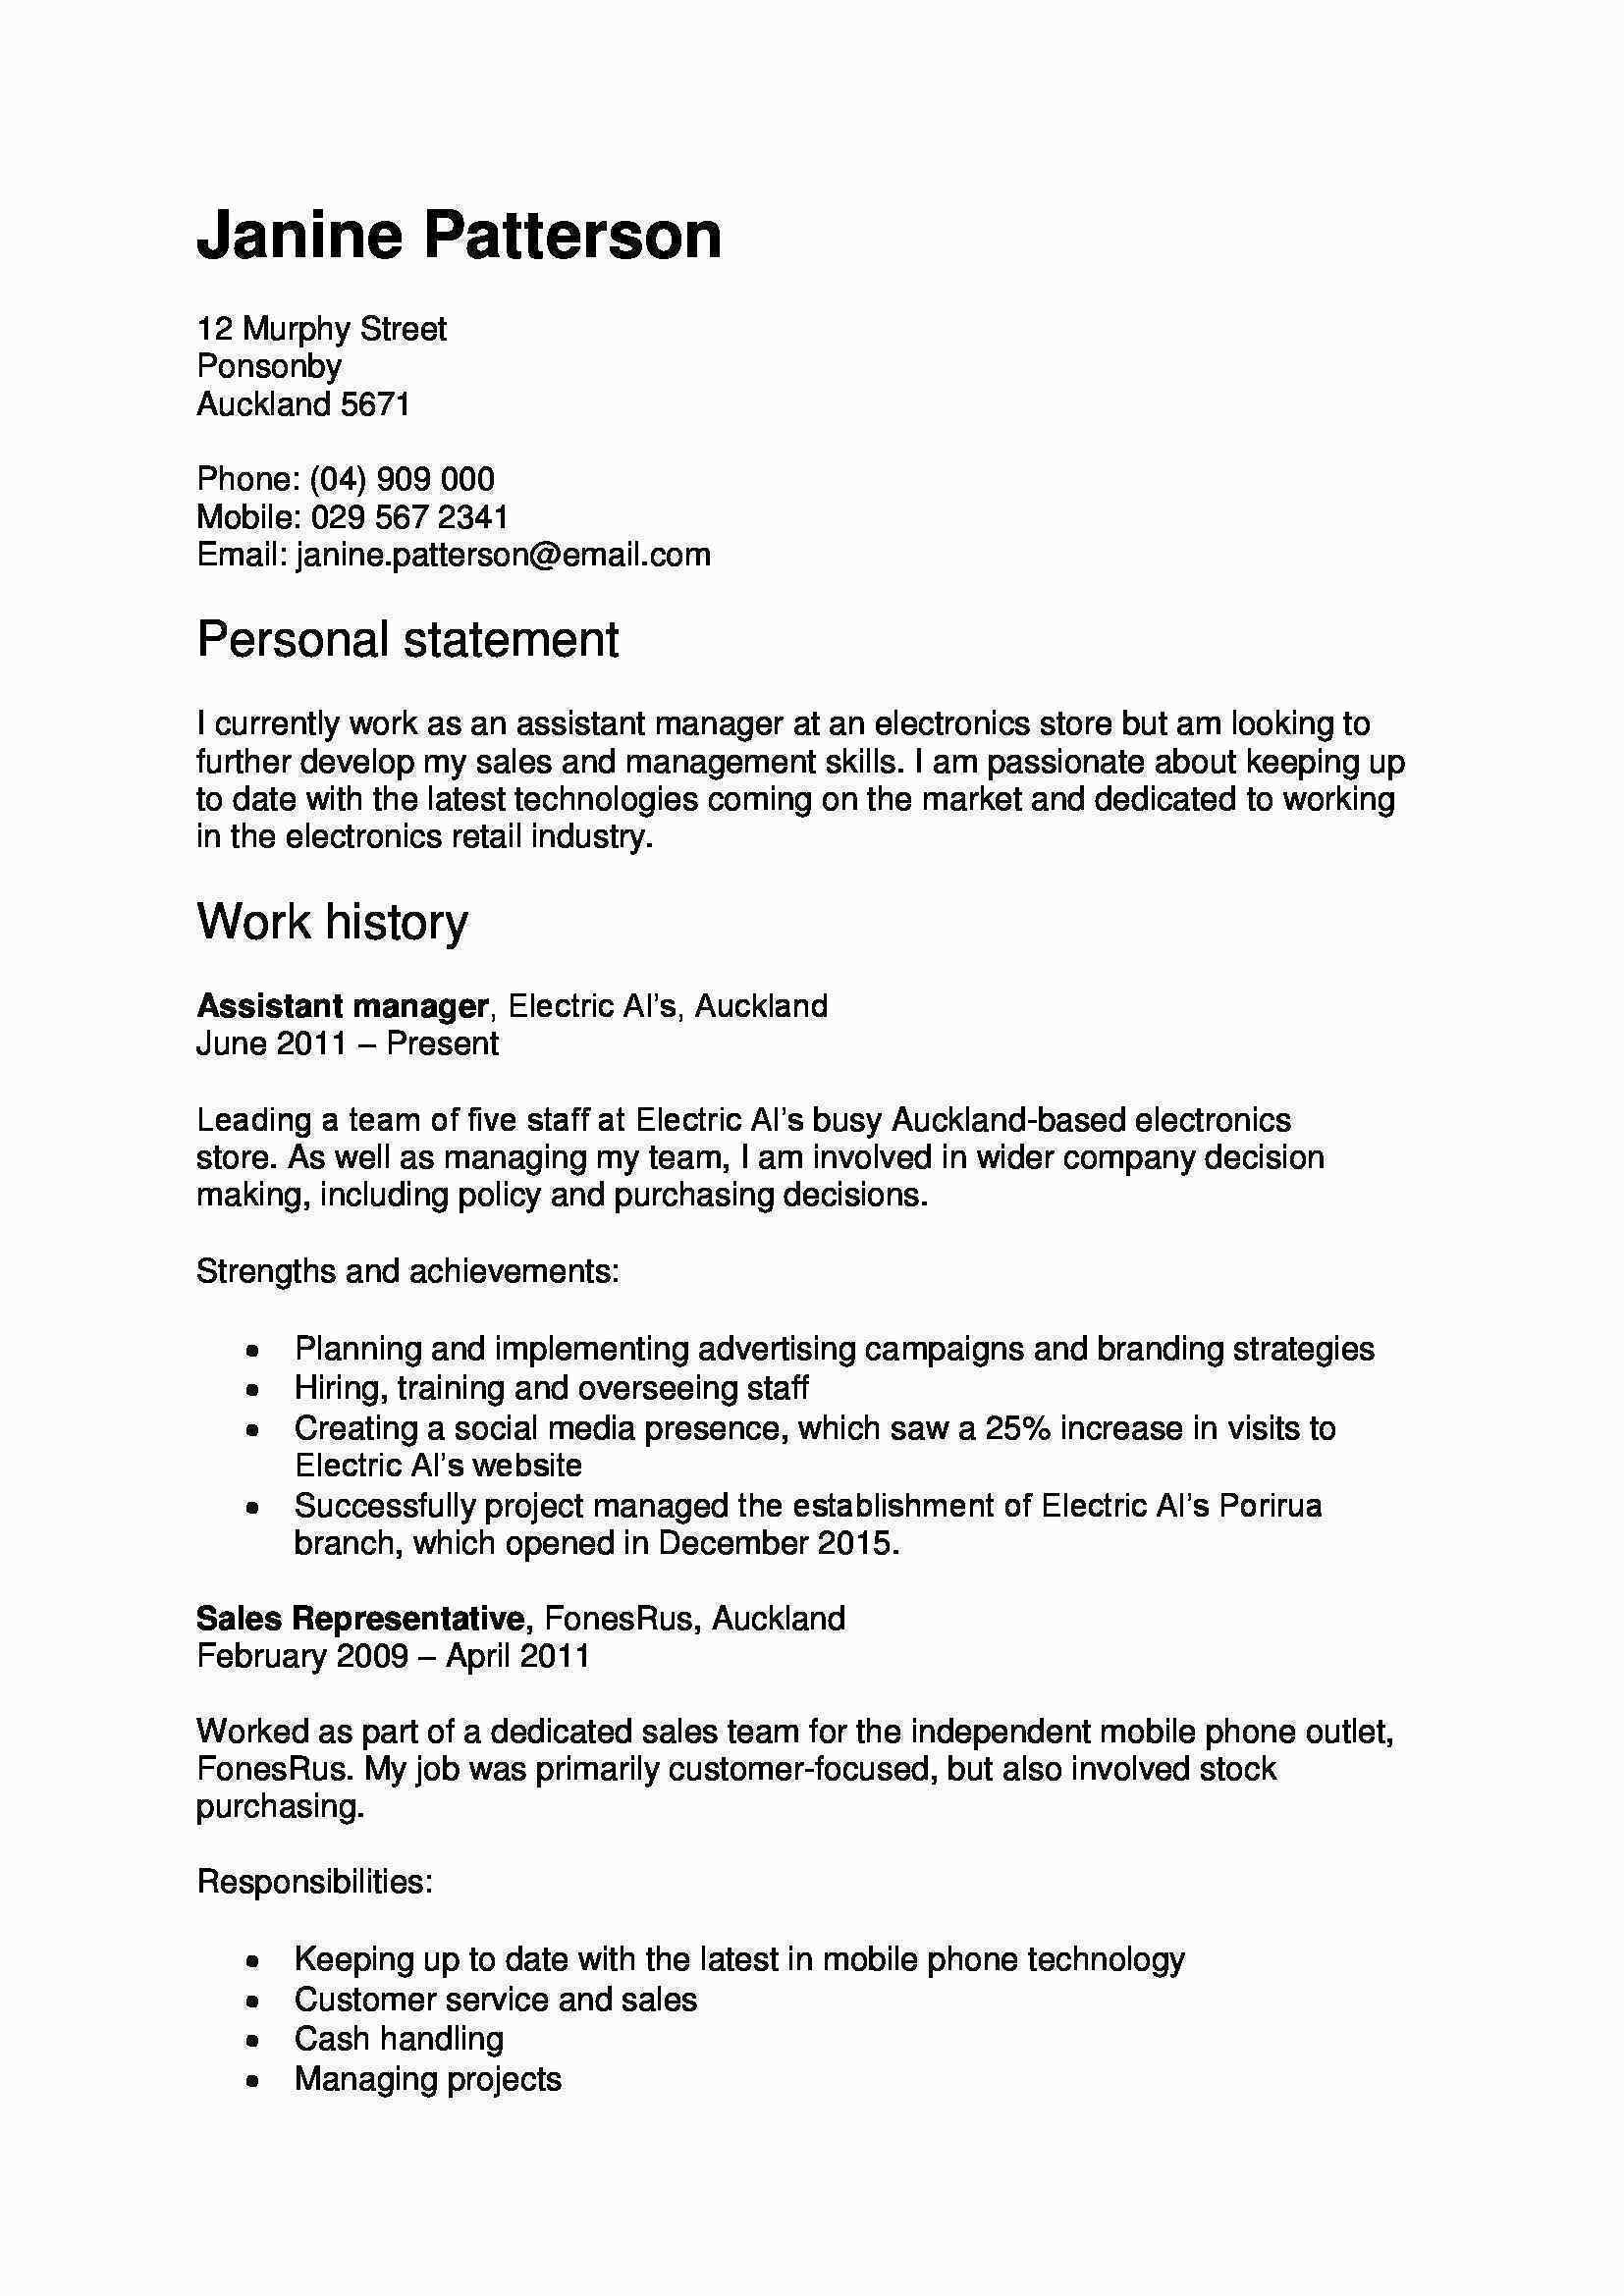 Social Media Manager Resume Example - Maintenance Planner Resume Sample Fresh Fresh social Media